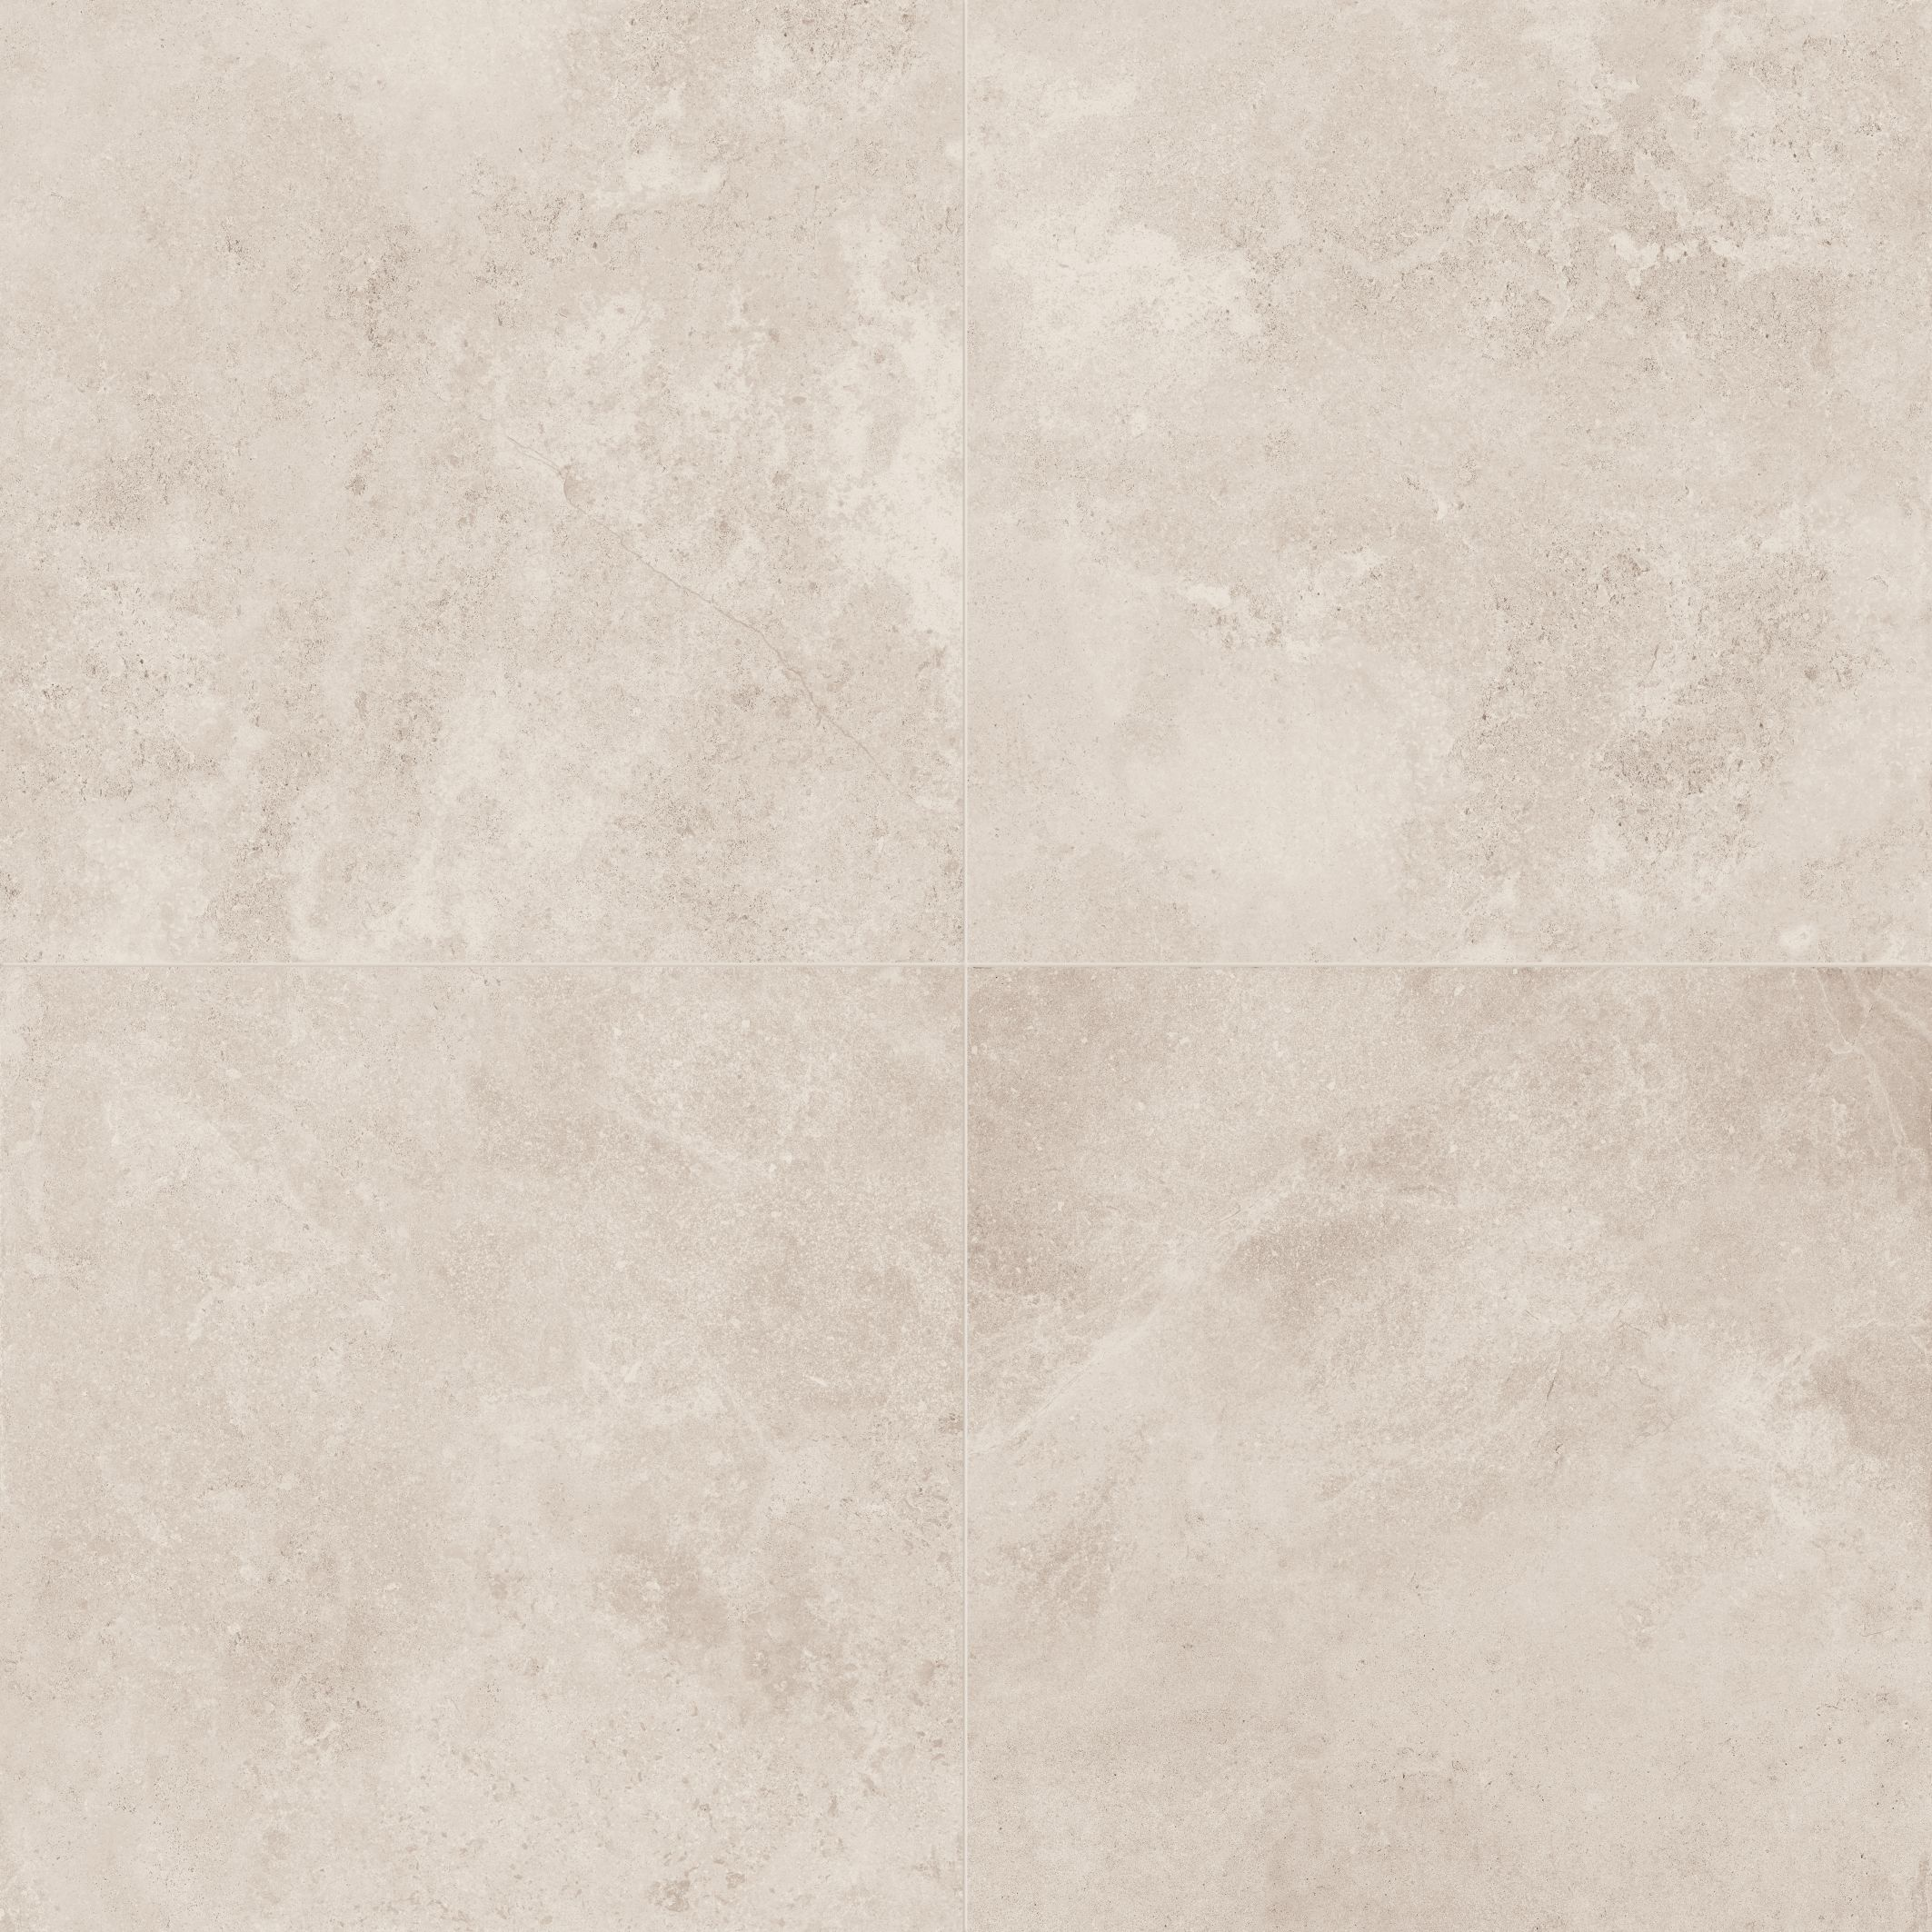 French Mood_chalon 60X60 RT_Pannello 4pz